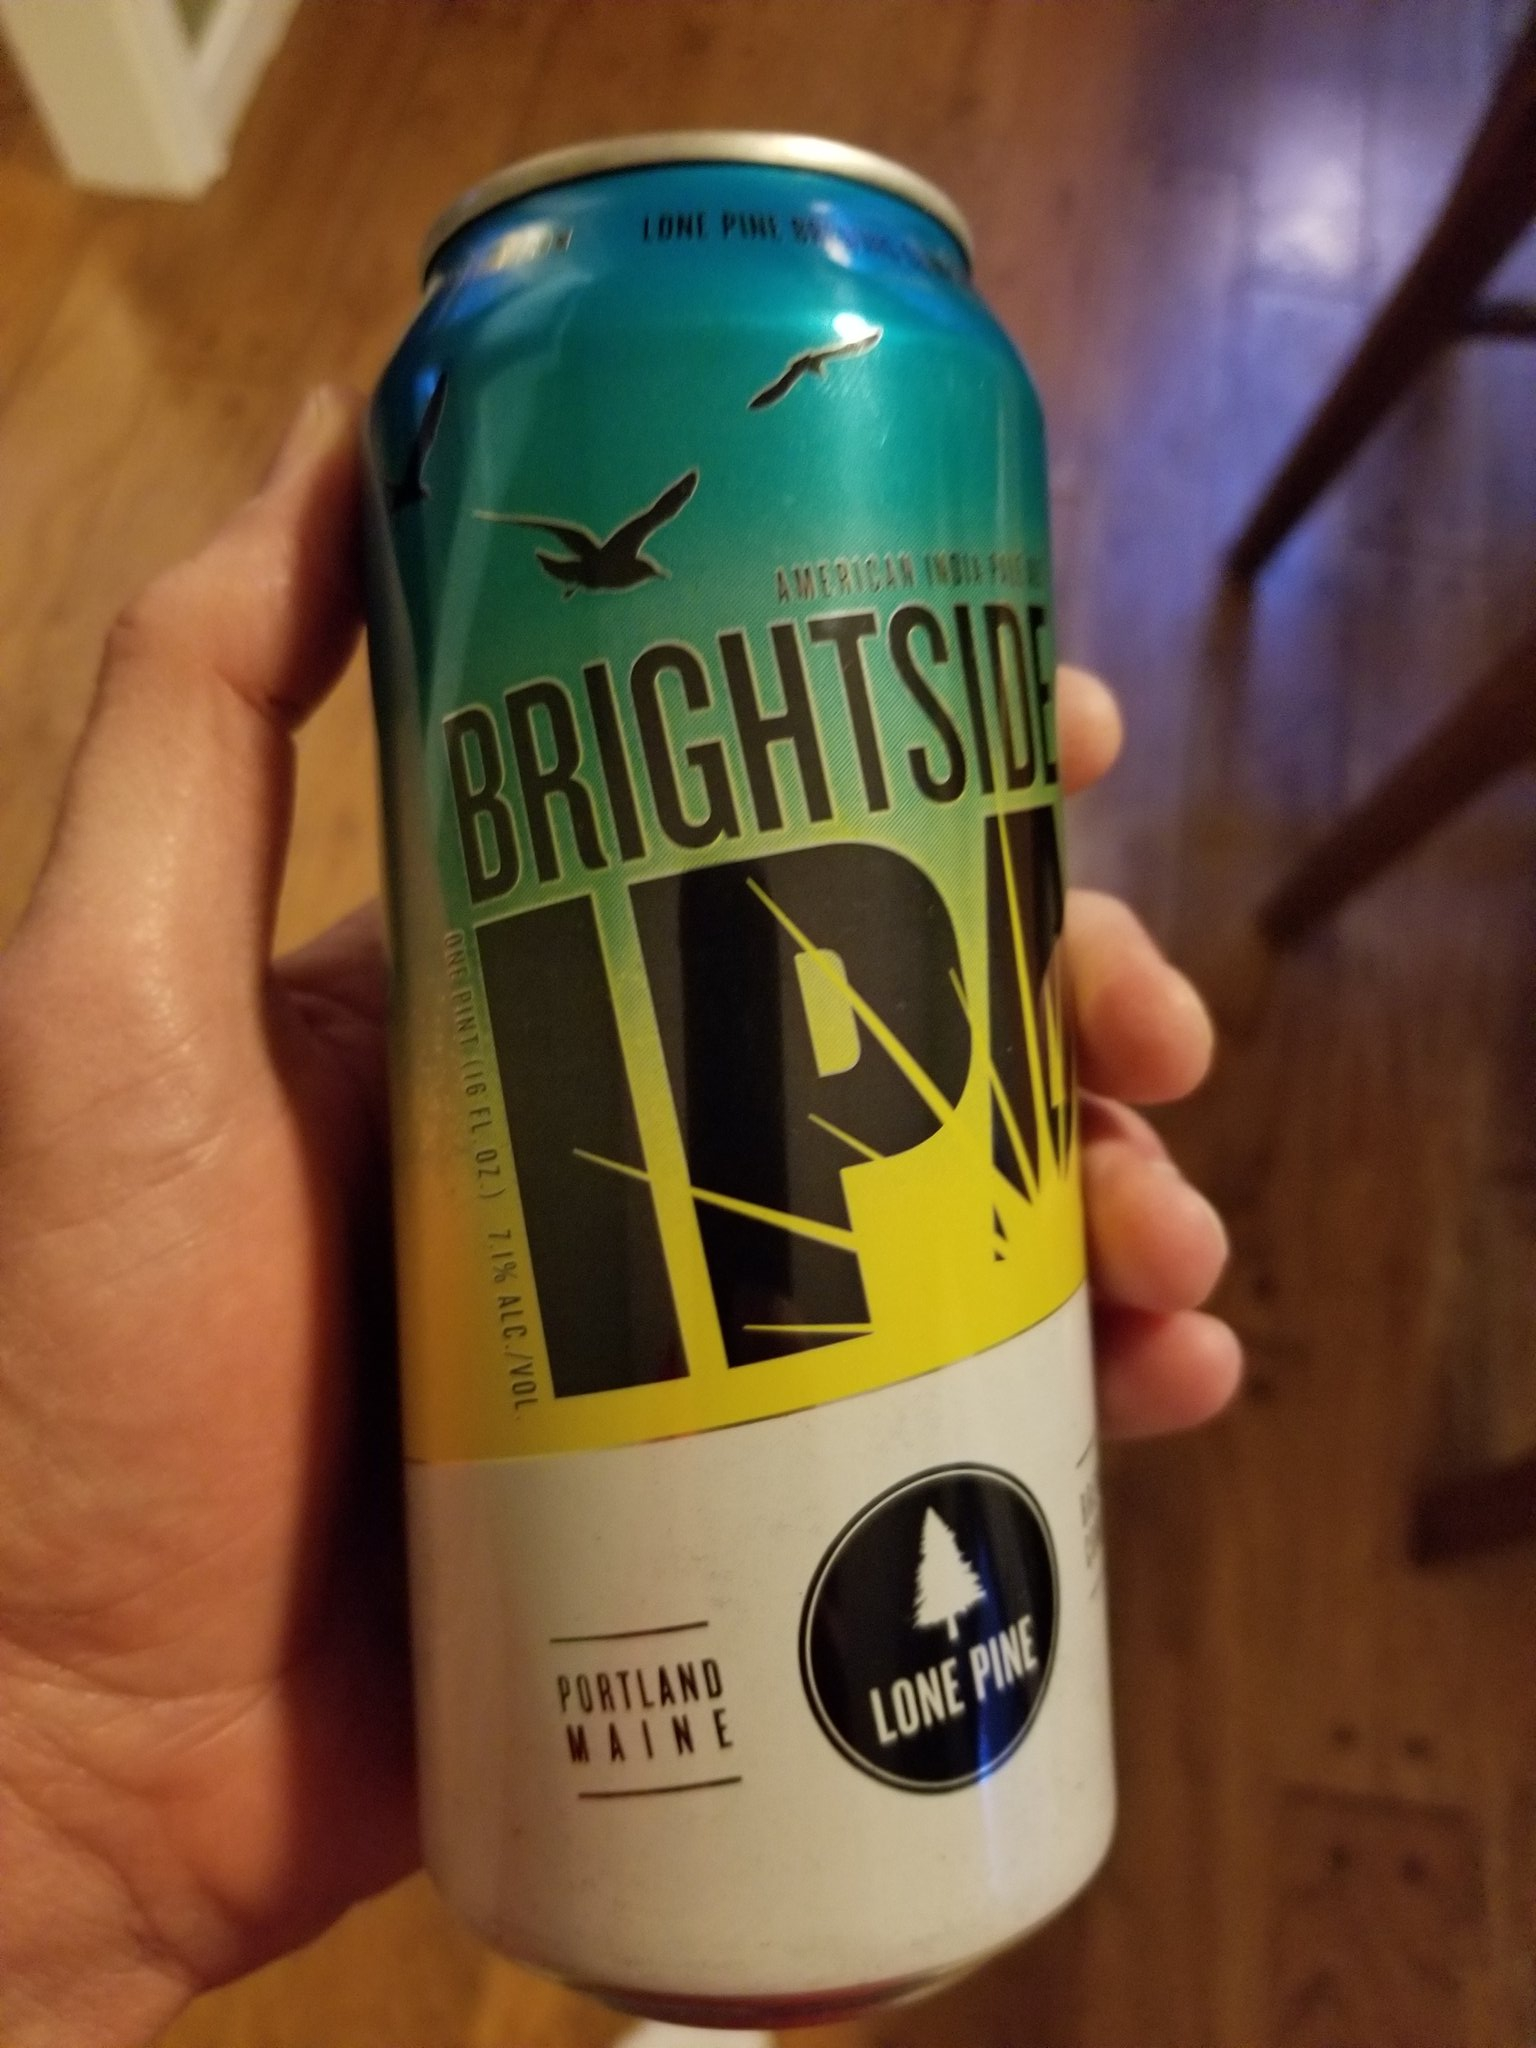 Brightside IPA Beer Review